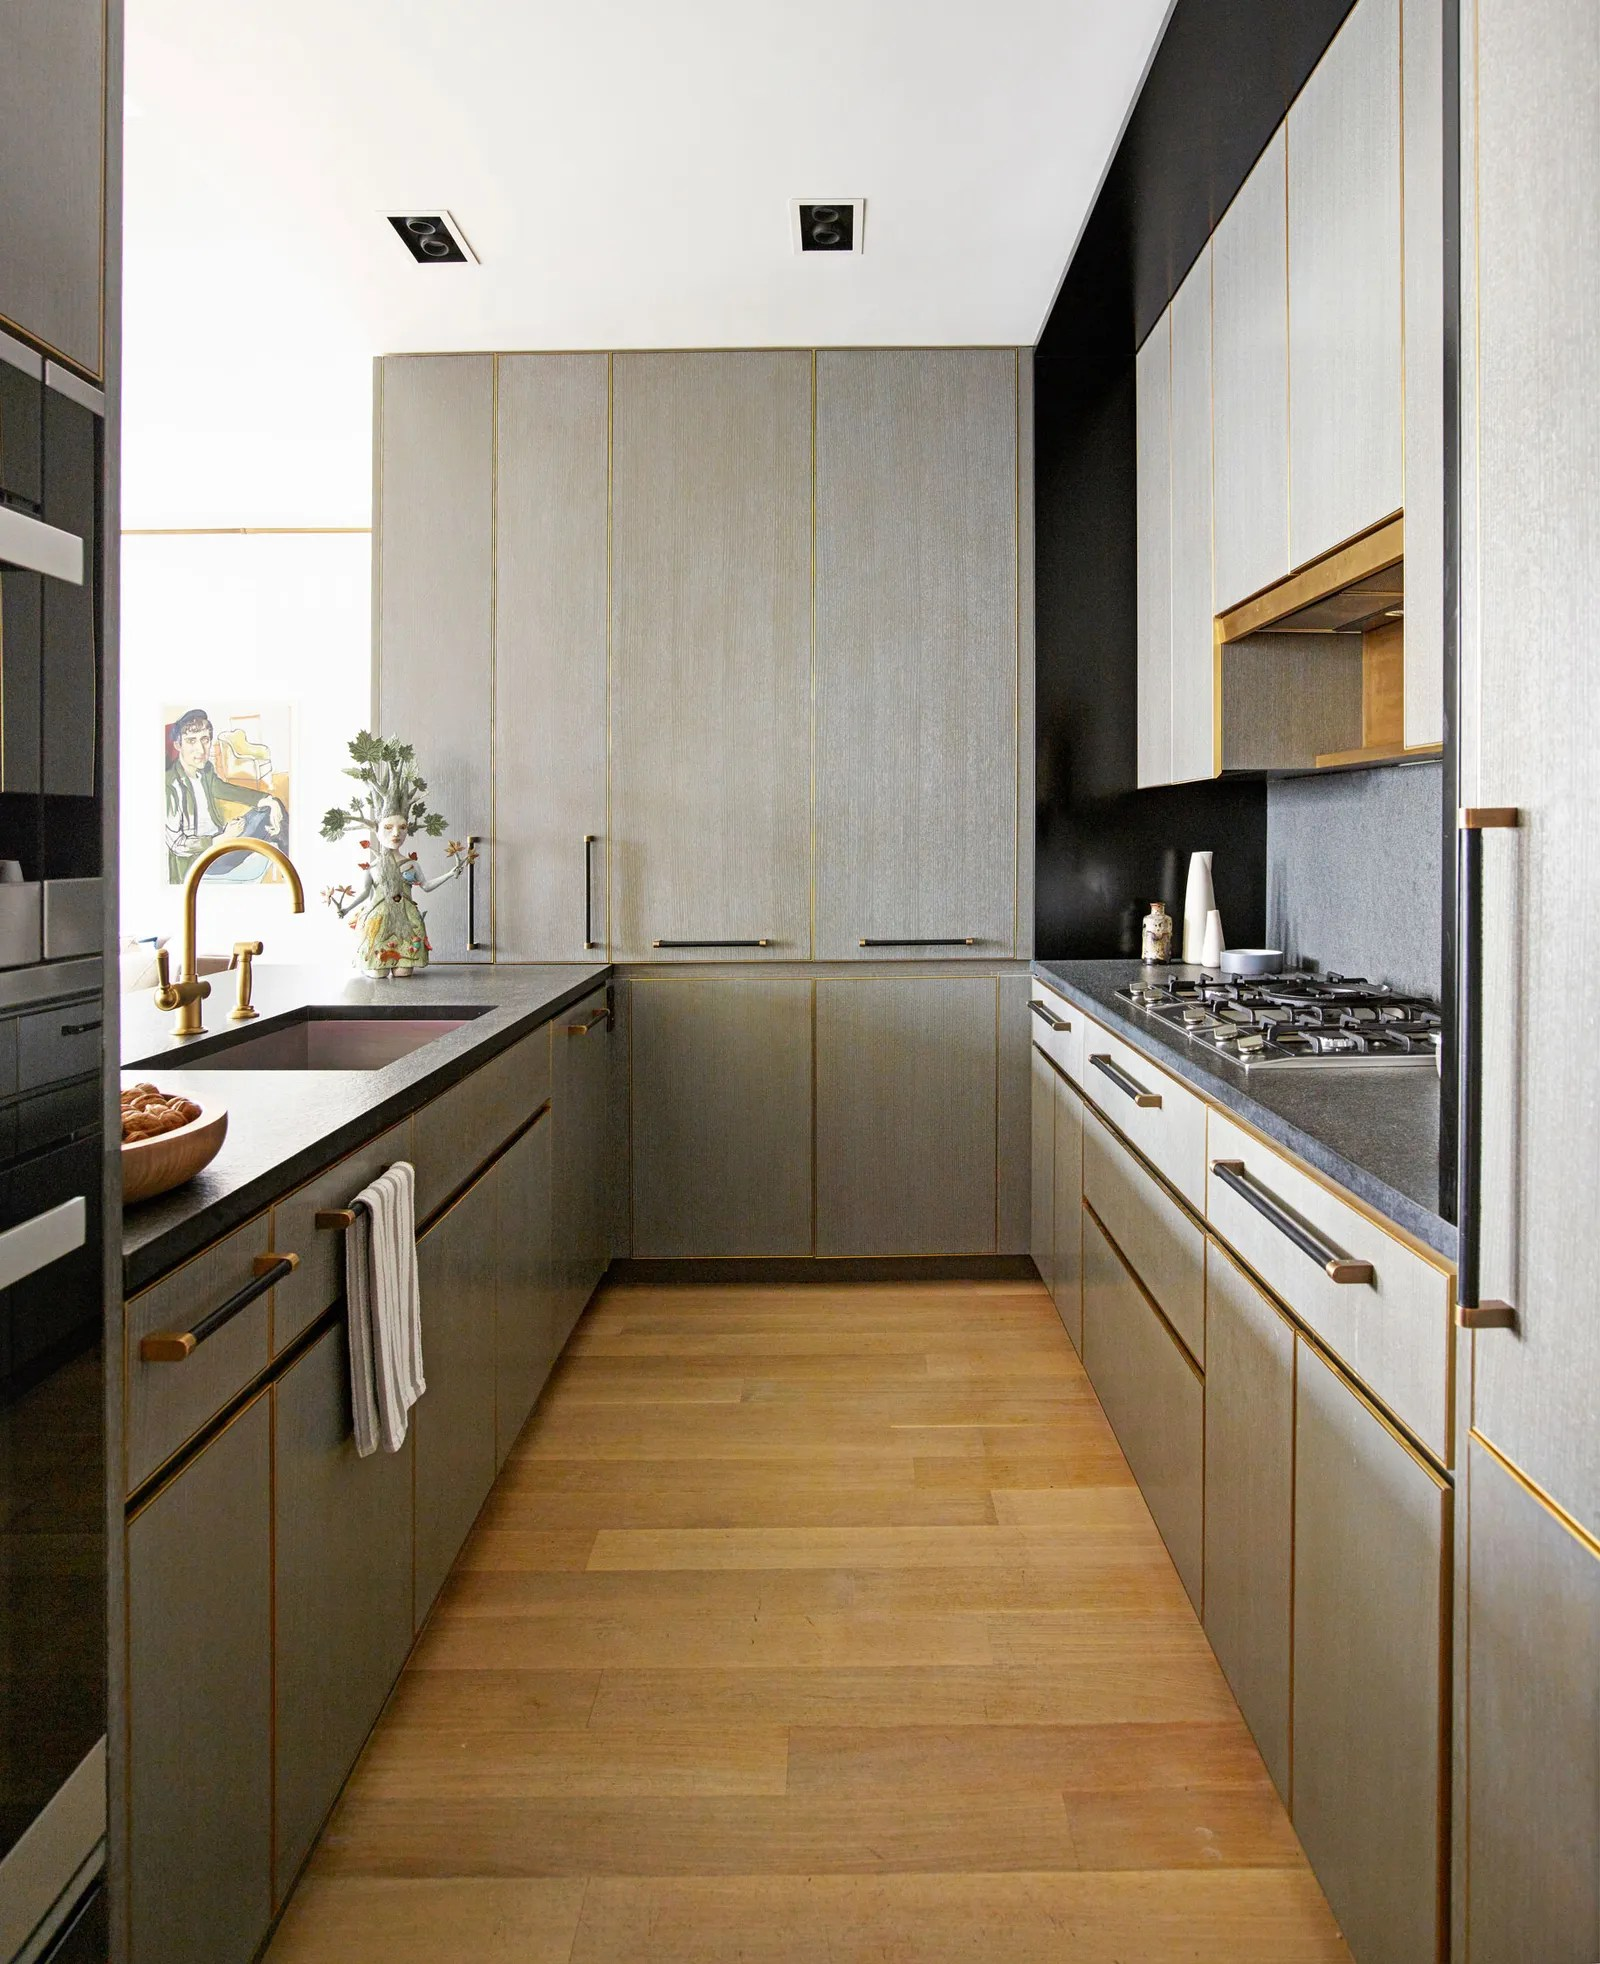 Kitchens For Small Space The Best Small Kitchen Design Ideas For Your Tiny Space